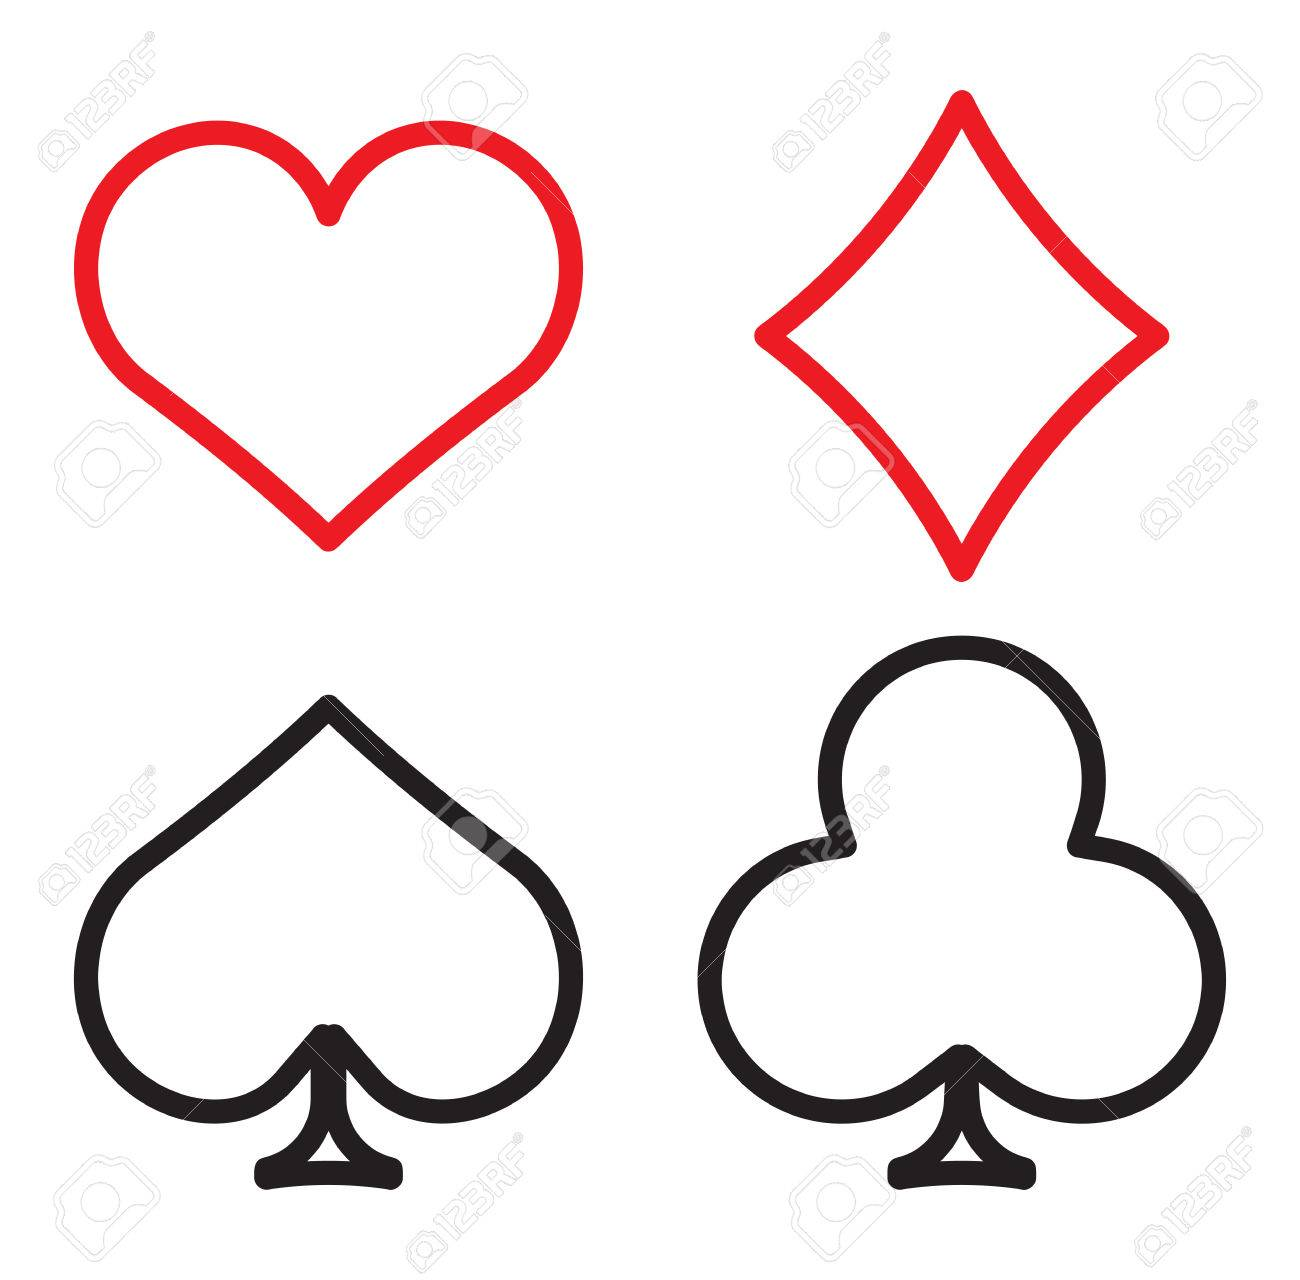 Playing cards symbols royalty free cliparts vectors and stock playing cards symbols stock vector 31266380 biocorpaavc